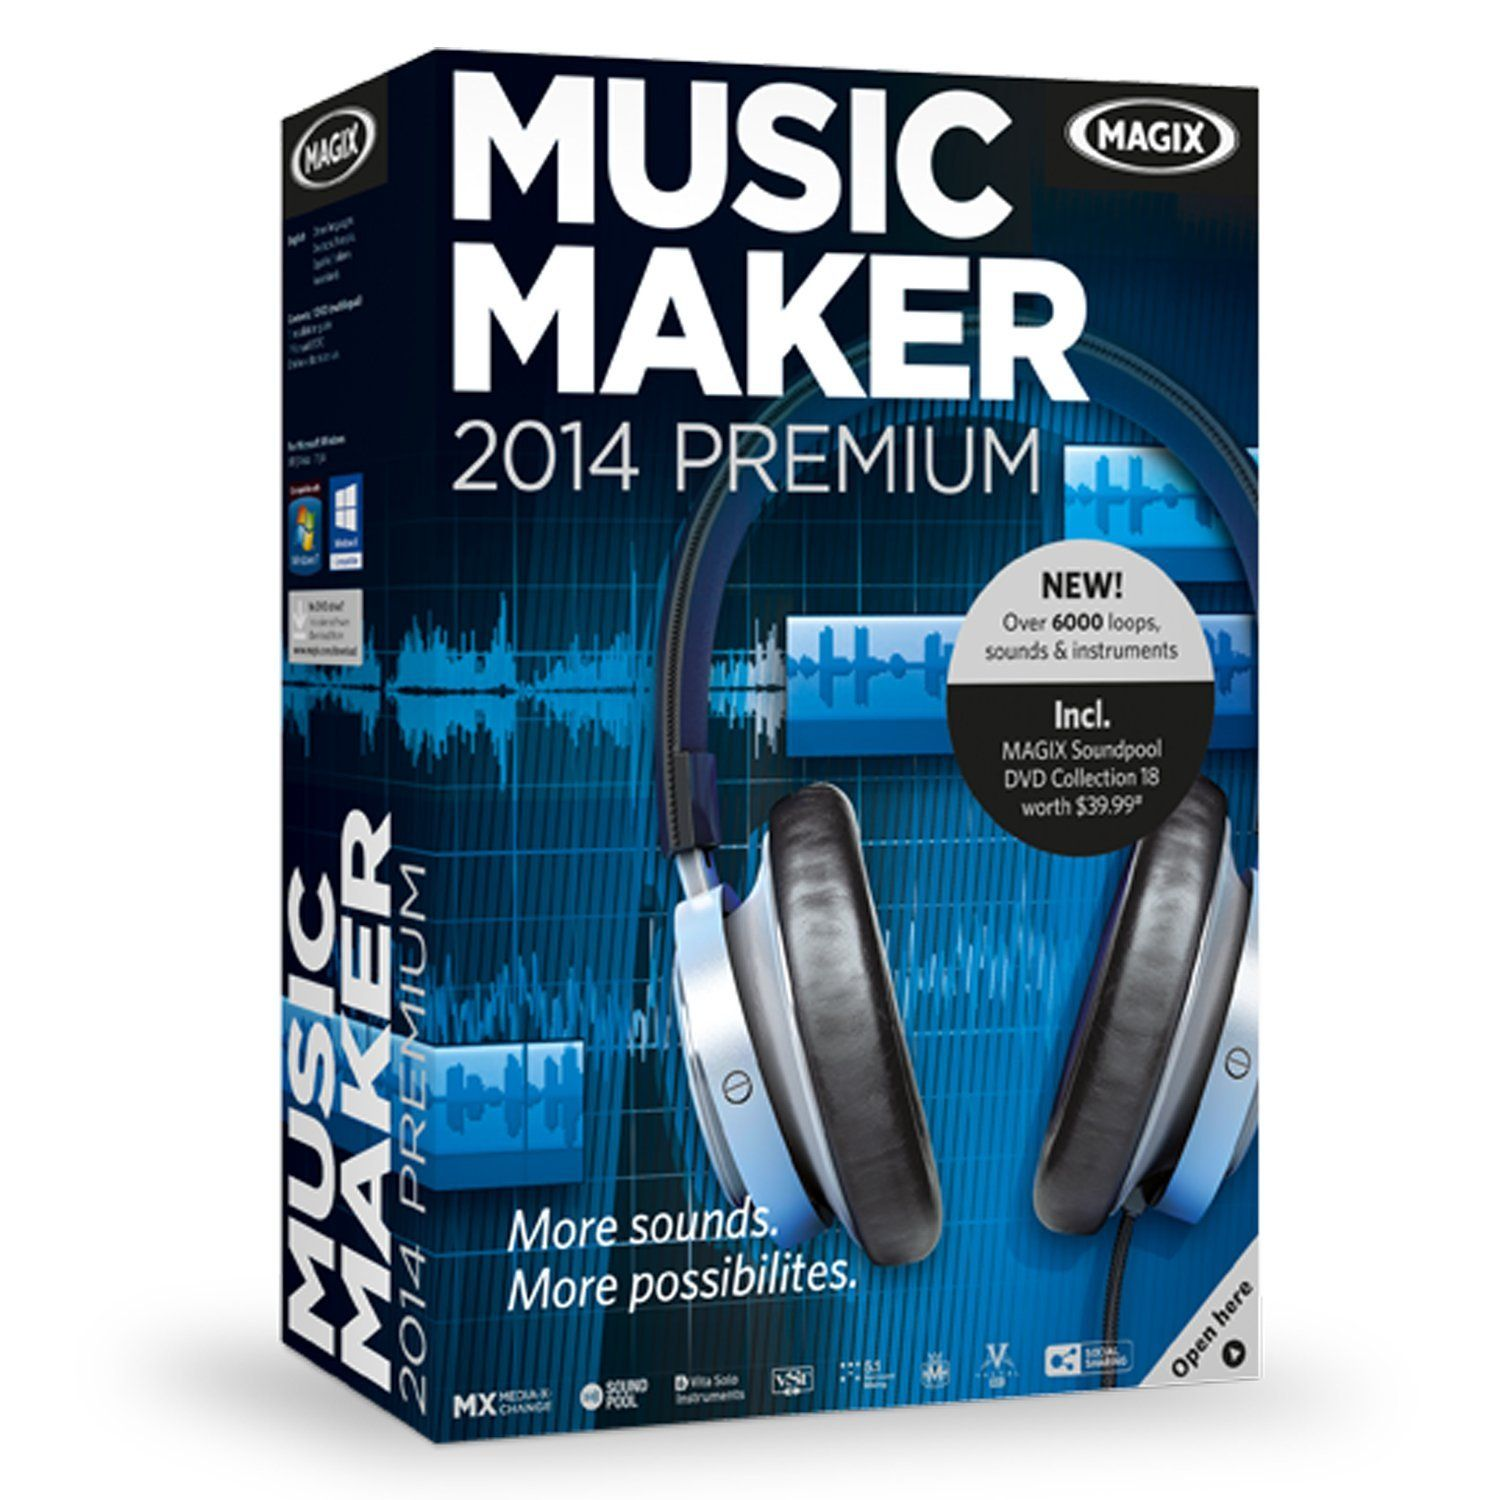 Magix music maker 2014 premium crack and serial number full magix music maker 2014 premium crack and serial number fandeluxe Image collections